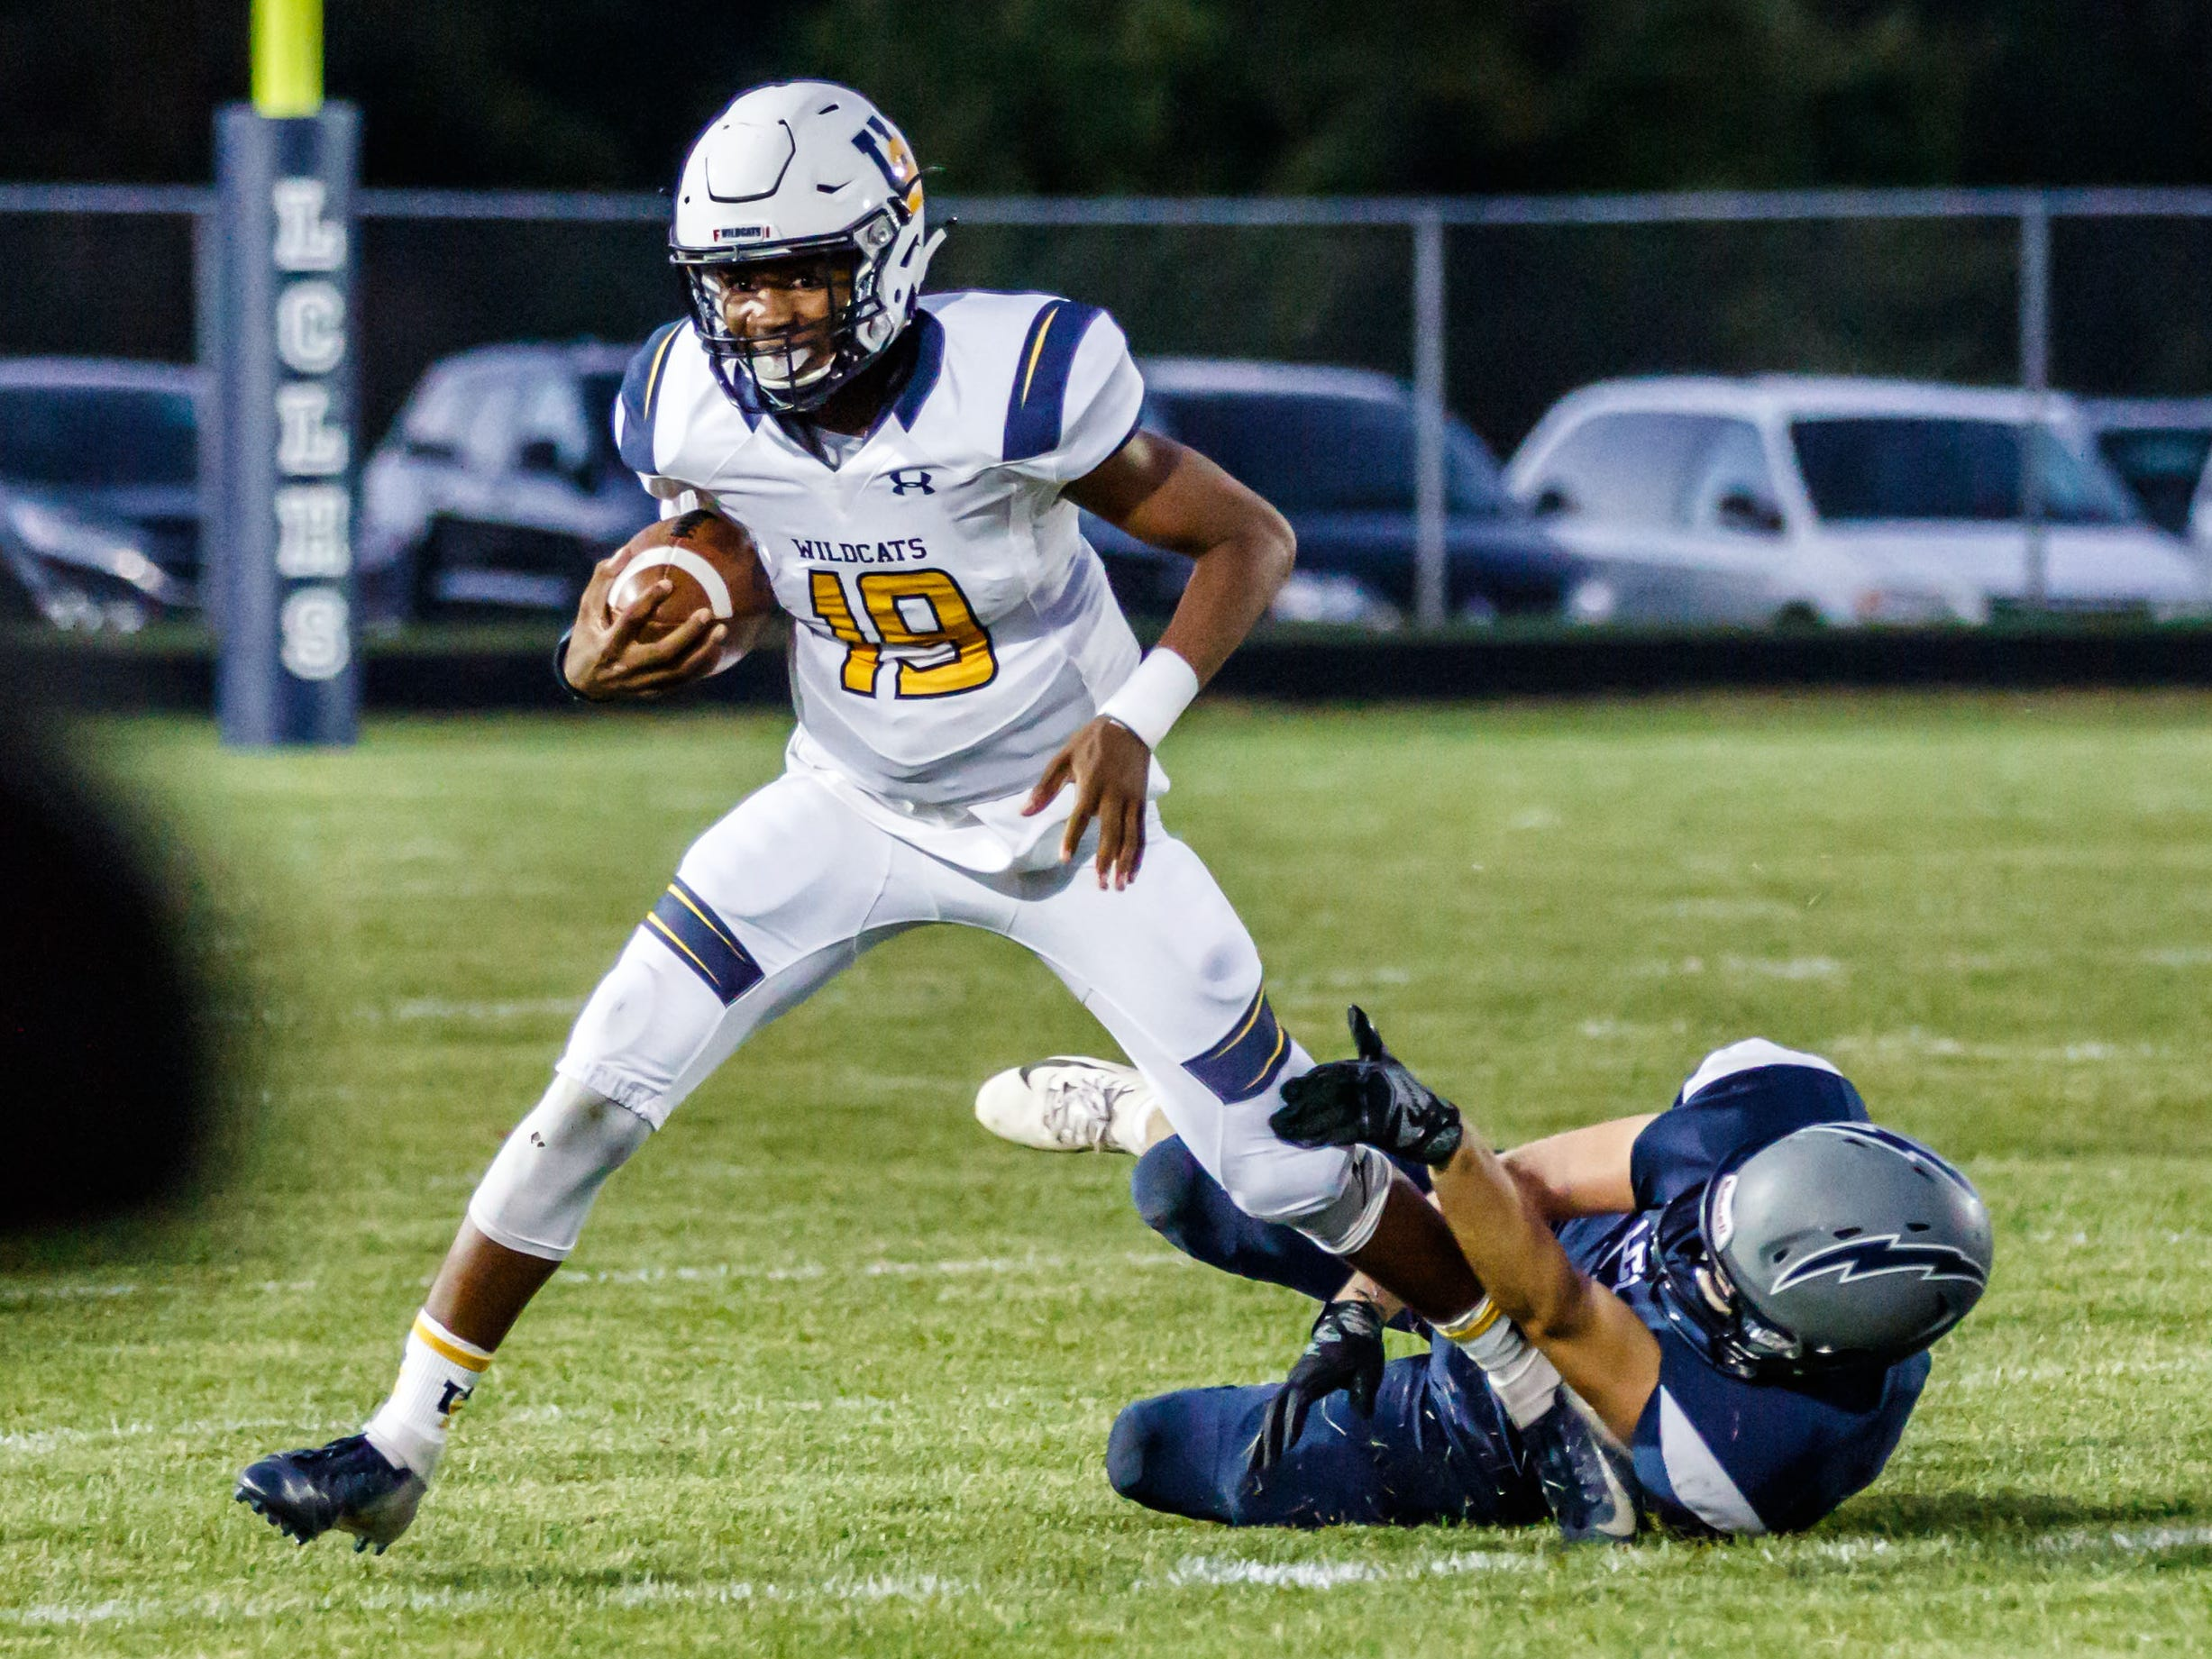 University School quarterback CJ Boyd (19) gets caught in the backfield by Lake Country Lutheran's Andrew Schumacher (20) during the game at Lake Country Lutheran on Thursday, Sept. 13, 2018.